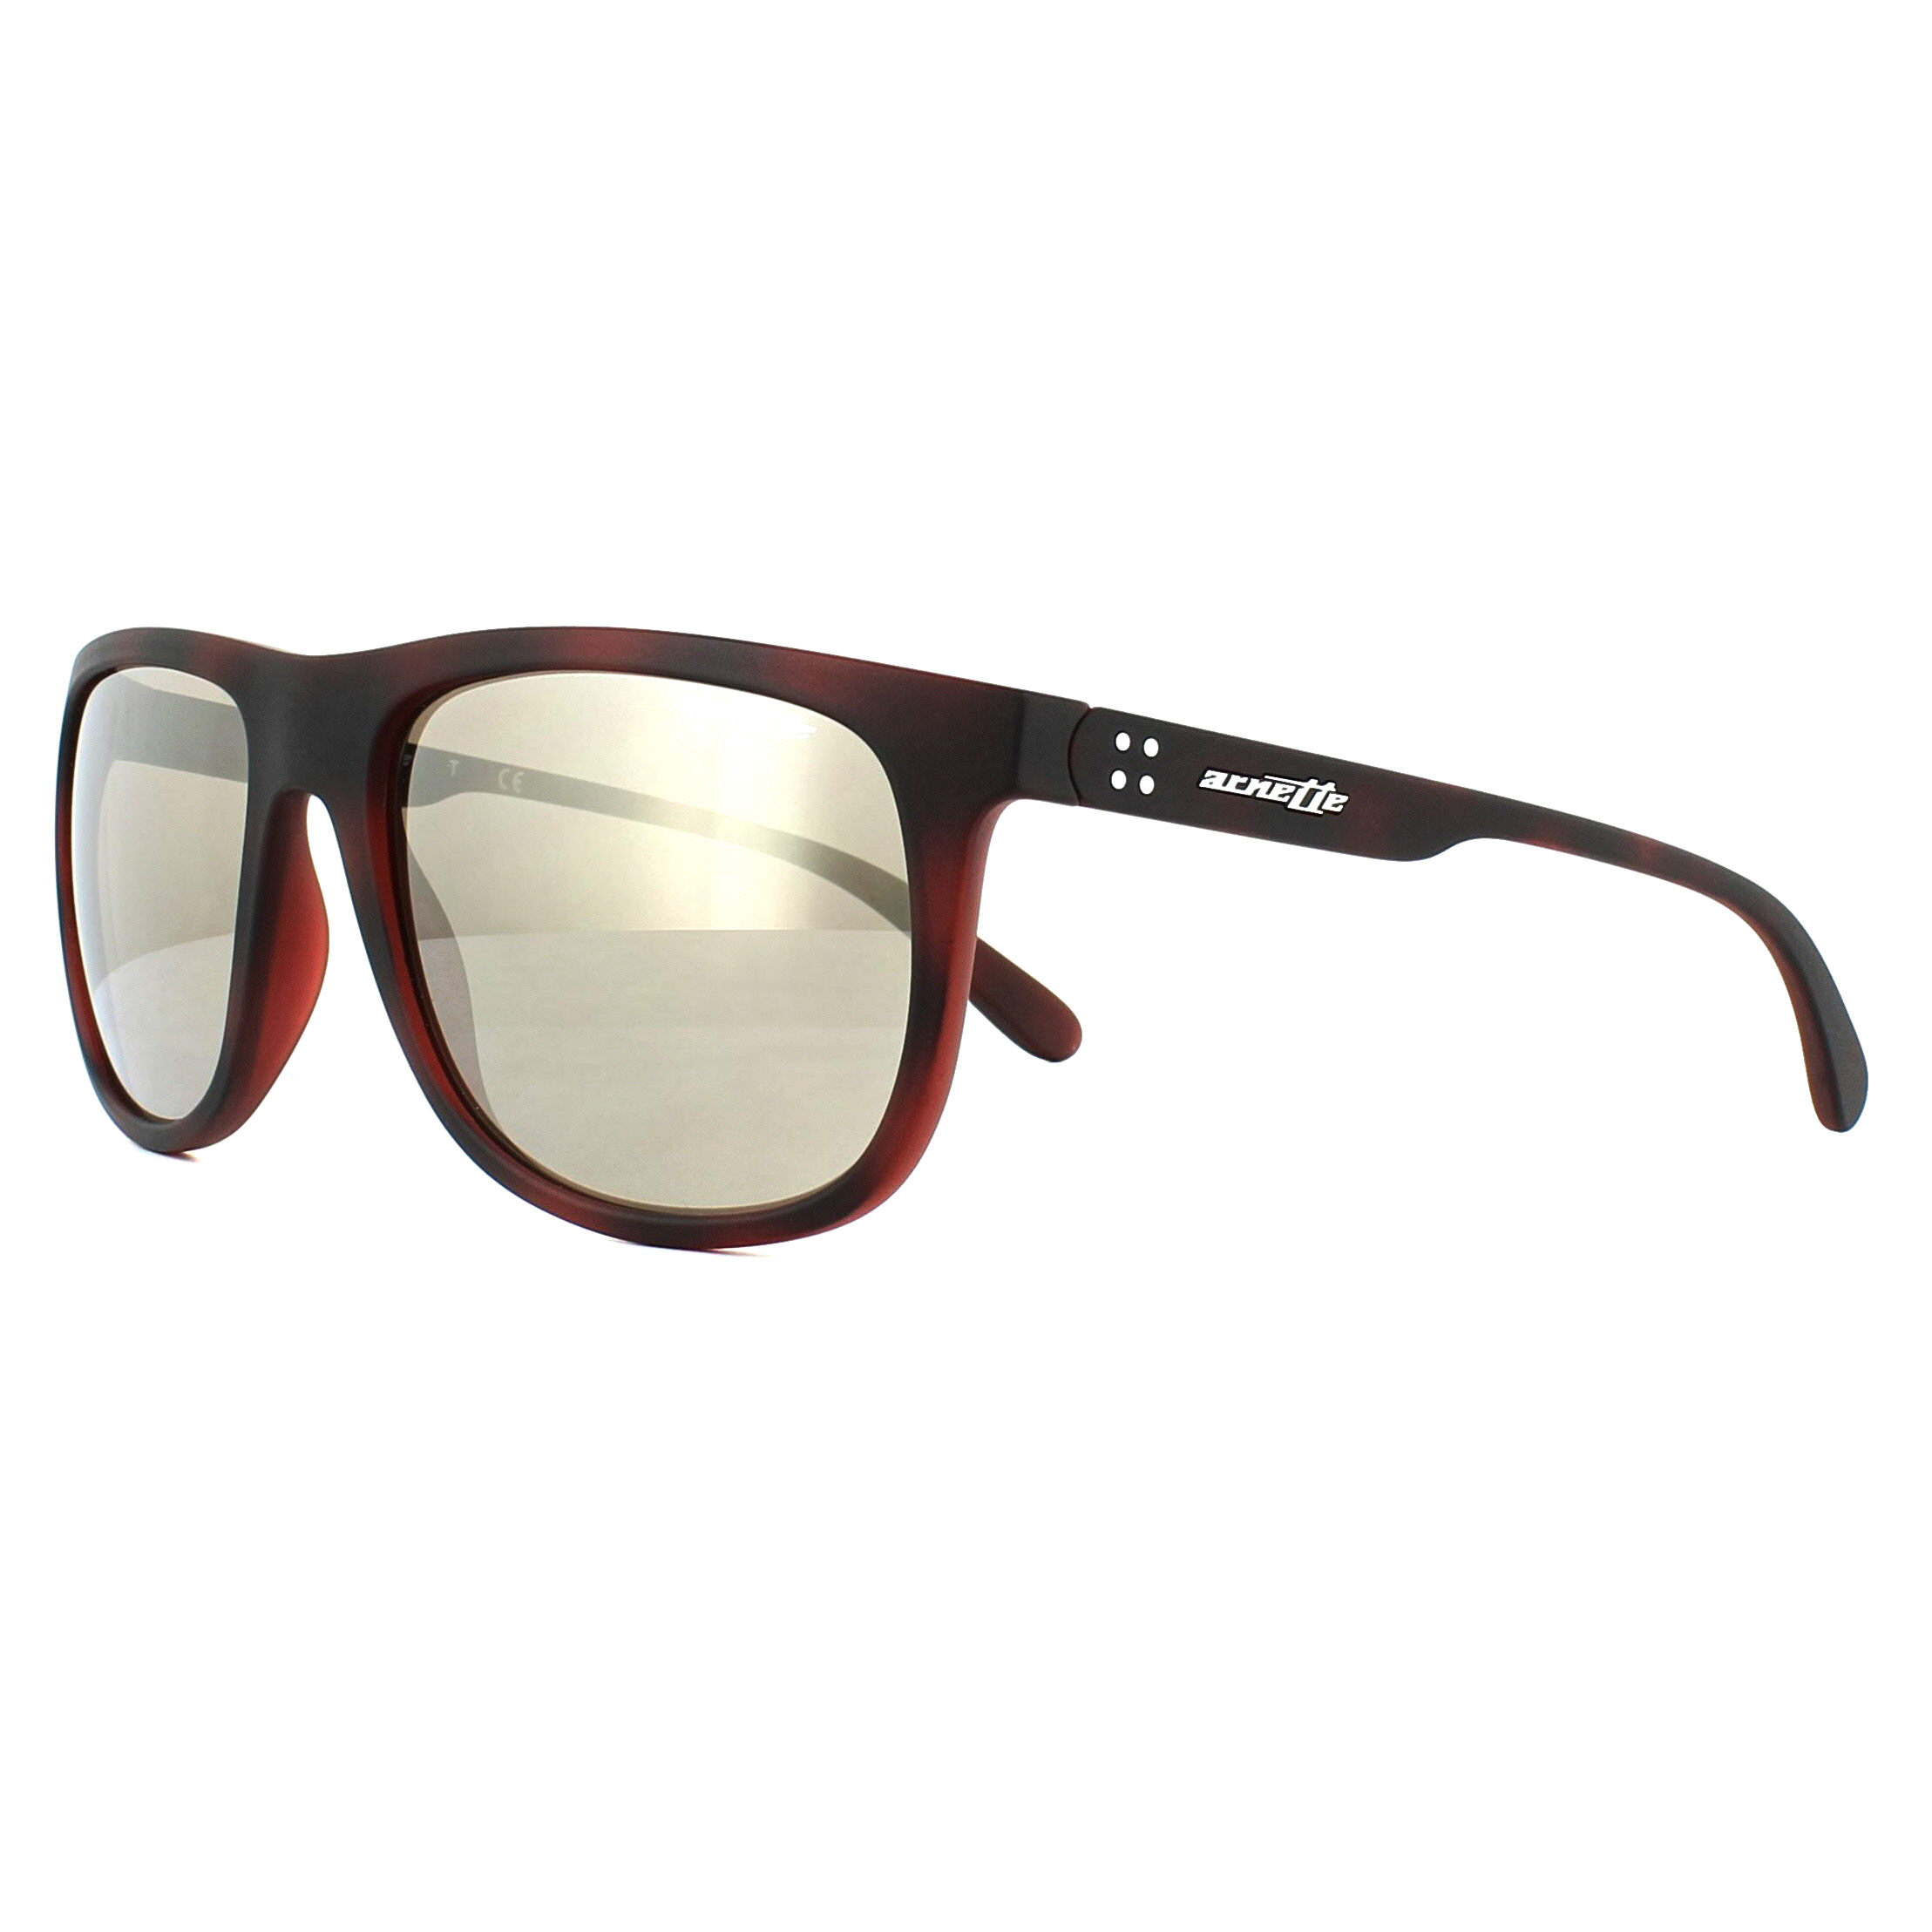 c1a2a295b7 Cheap Arnette Crooked Grind 4235 Sunglasses - Discounted Sunglasses